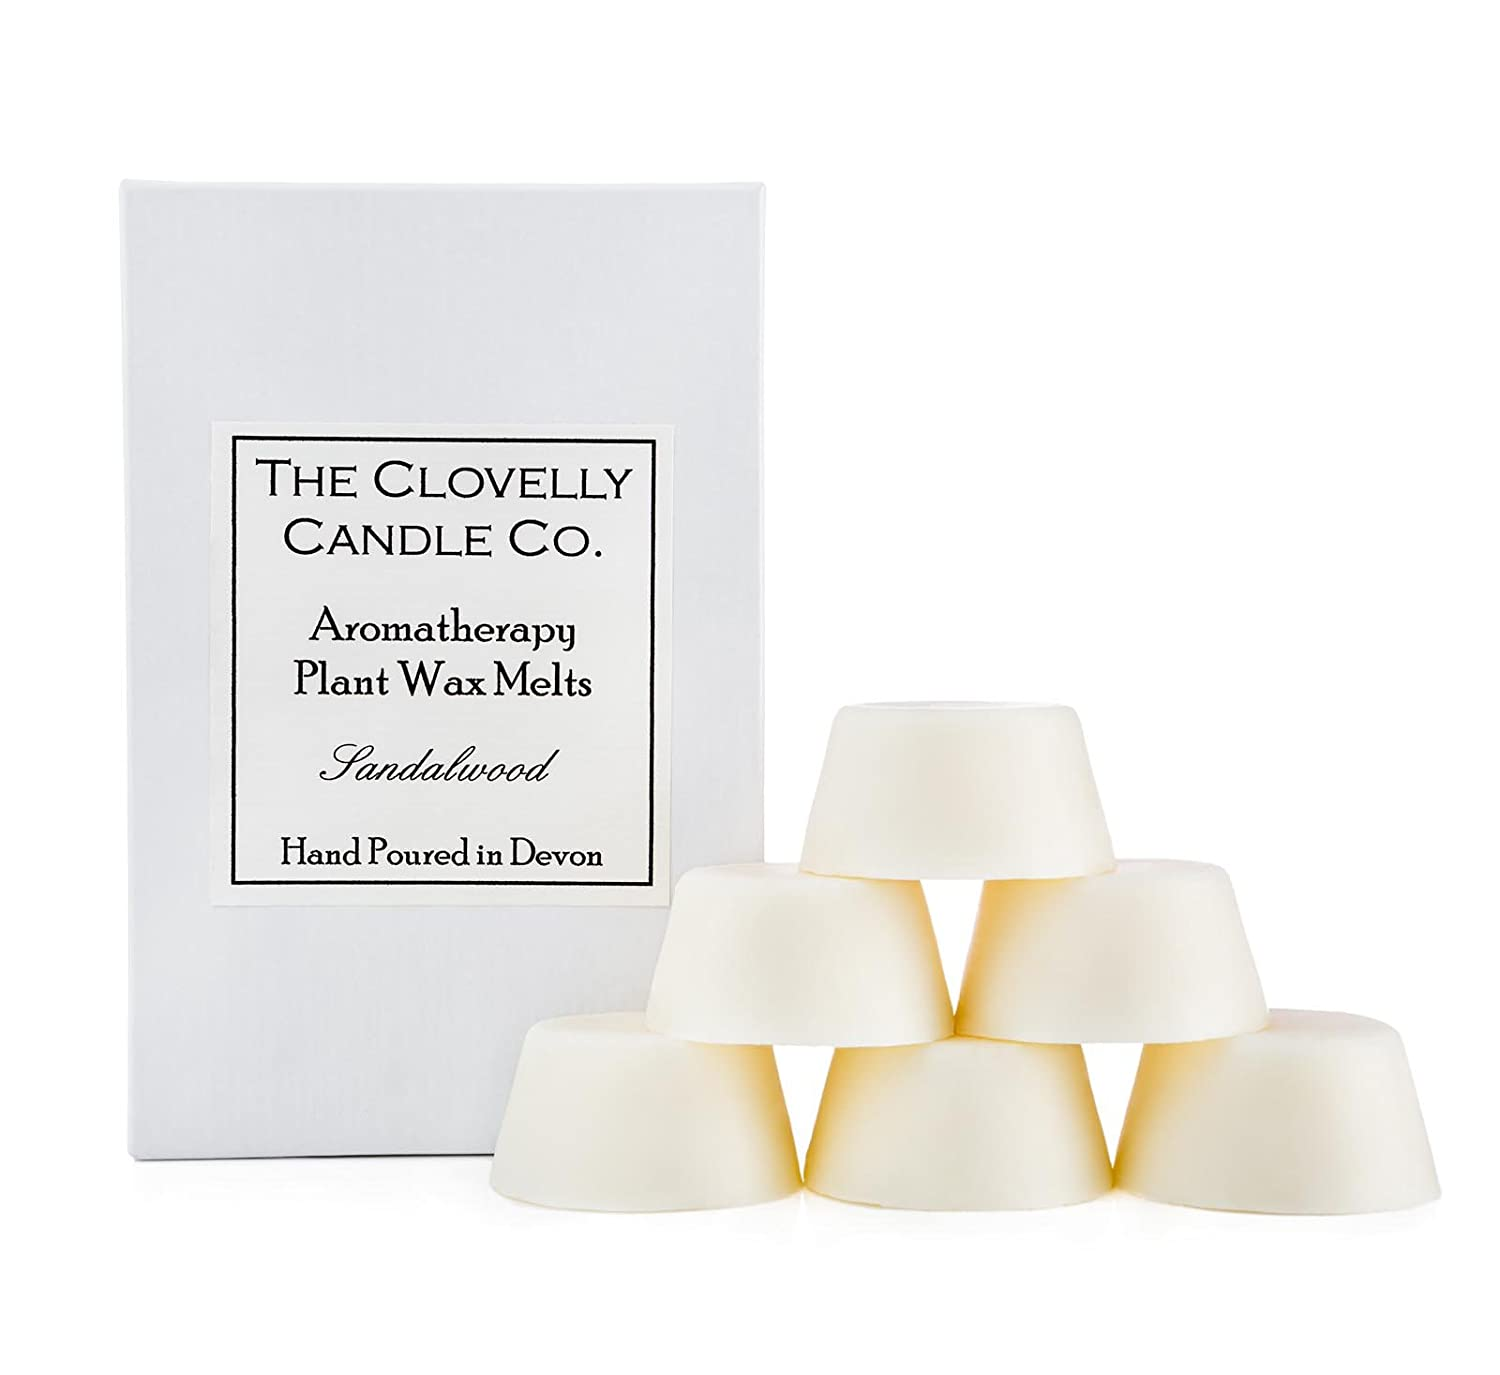 Clovelly Soap Co Handmade Natural Scented Lavender Aromatherapy Soy Wax Melts Box of 6 Tarts The Clovelly Soap Co